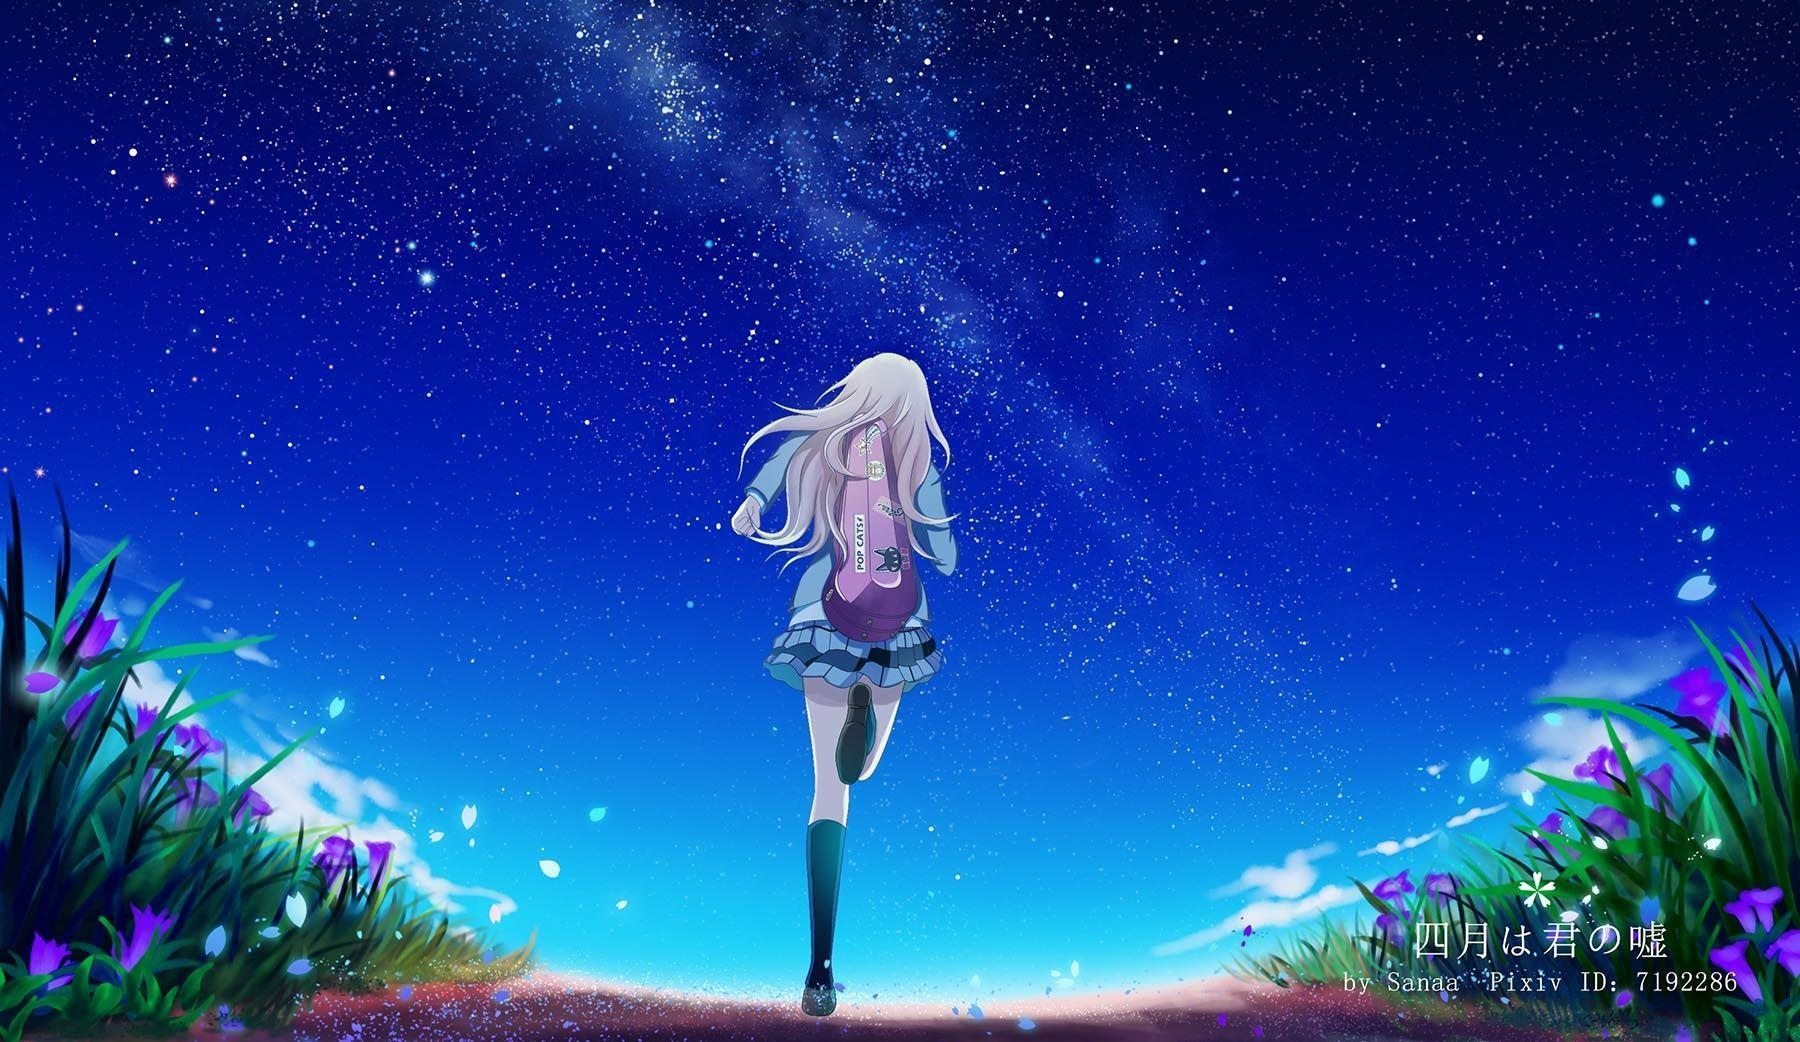 Your Lie In April Hd Wallpapers Top Free Your Lie In April Hd